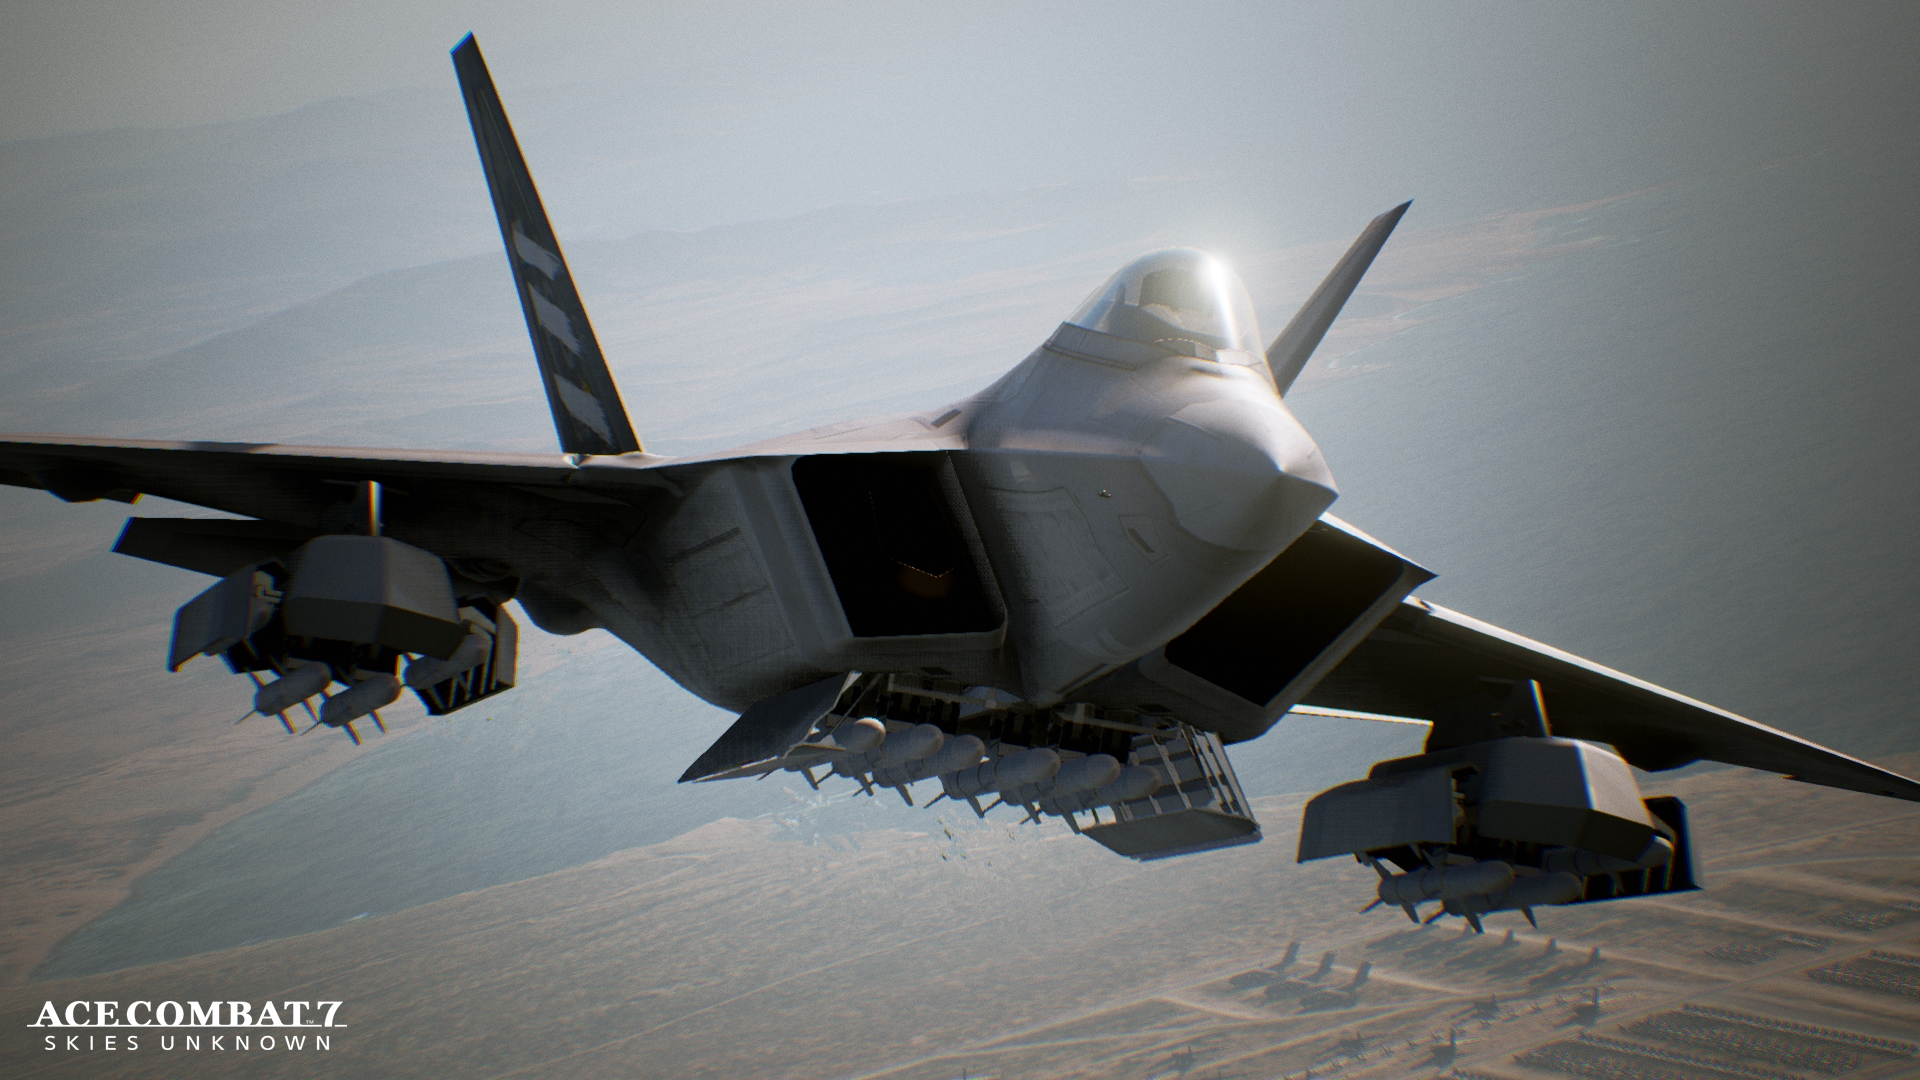 Ace Combat 7: Skies Unknown - highway to the no danger of nausea zone